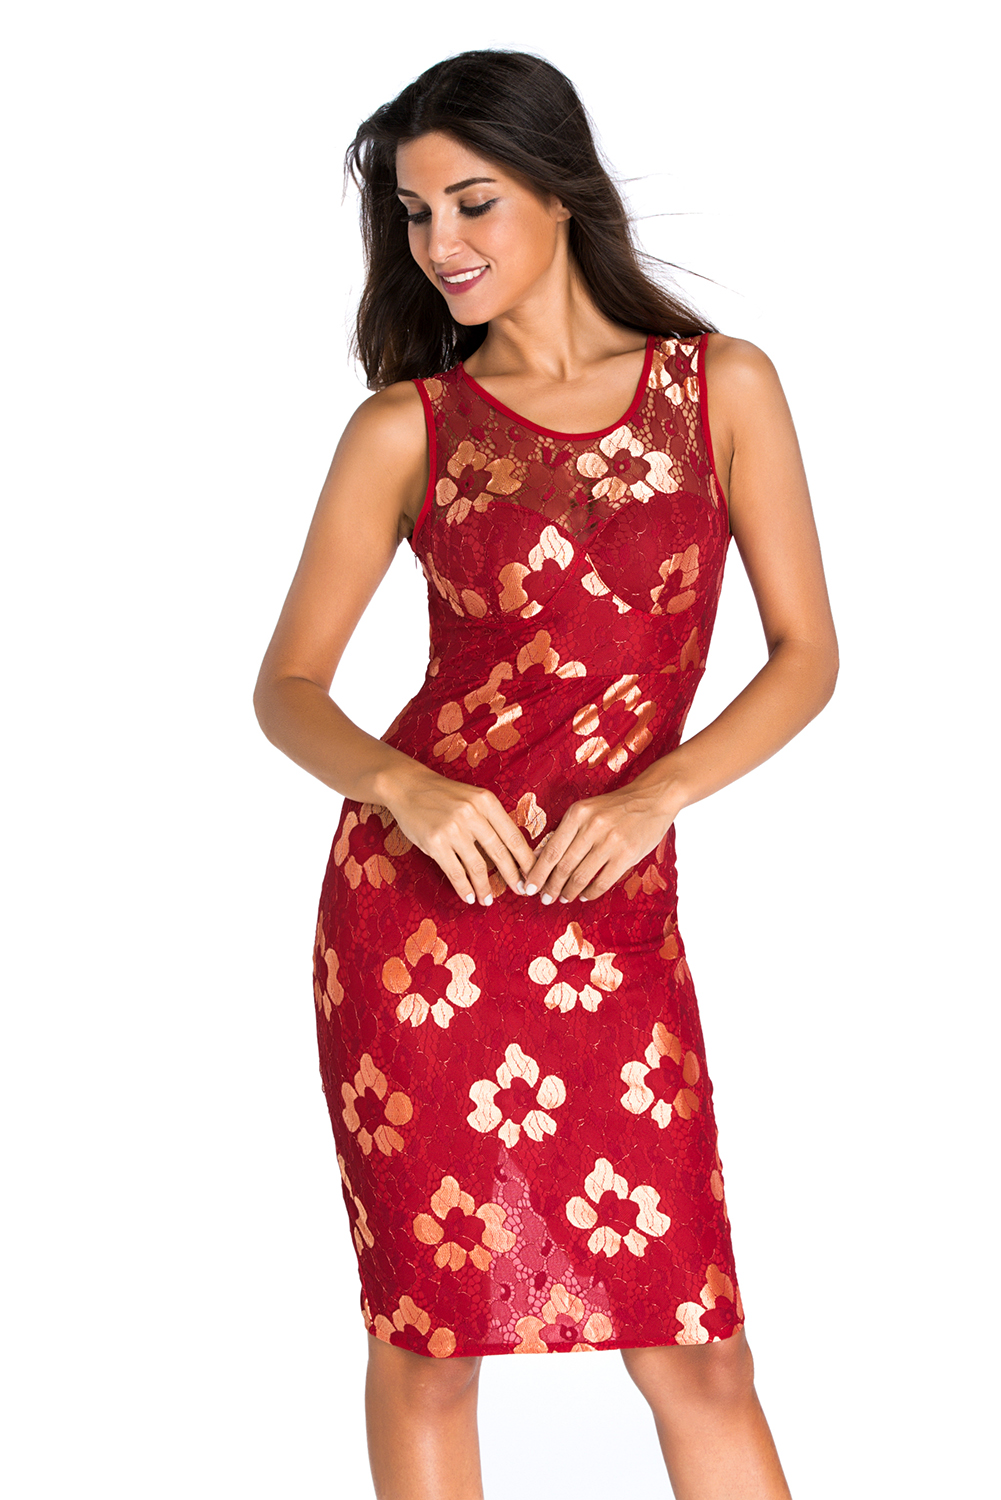 golden-embroidered-red-floral-dress-llc22668p-3-4